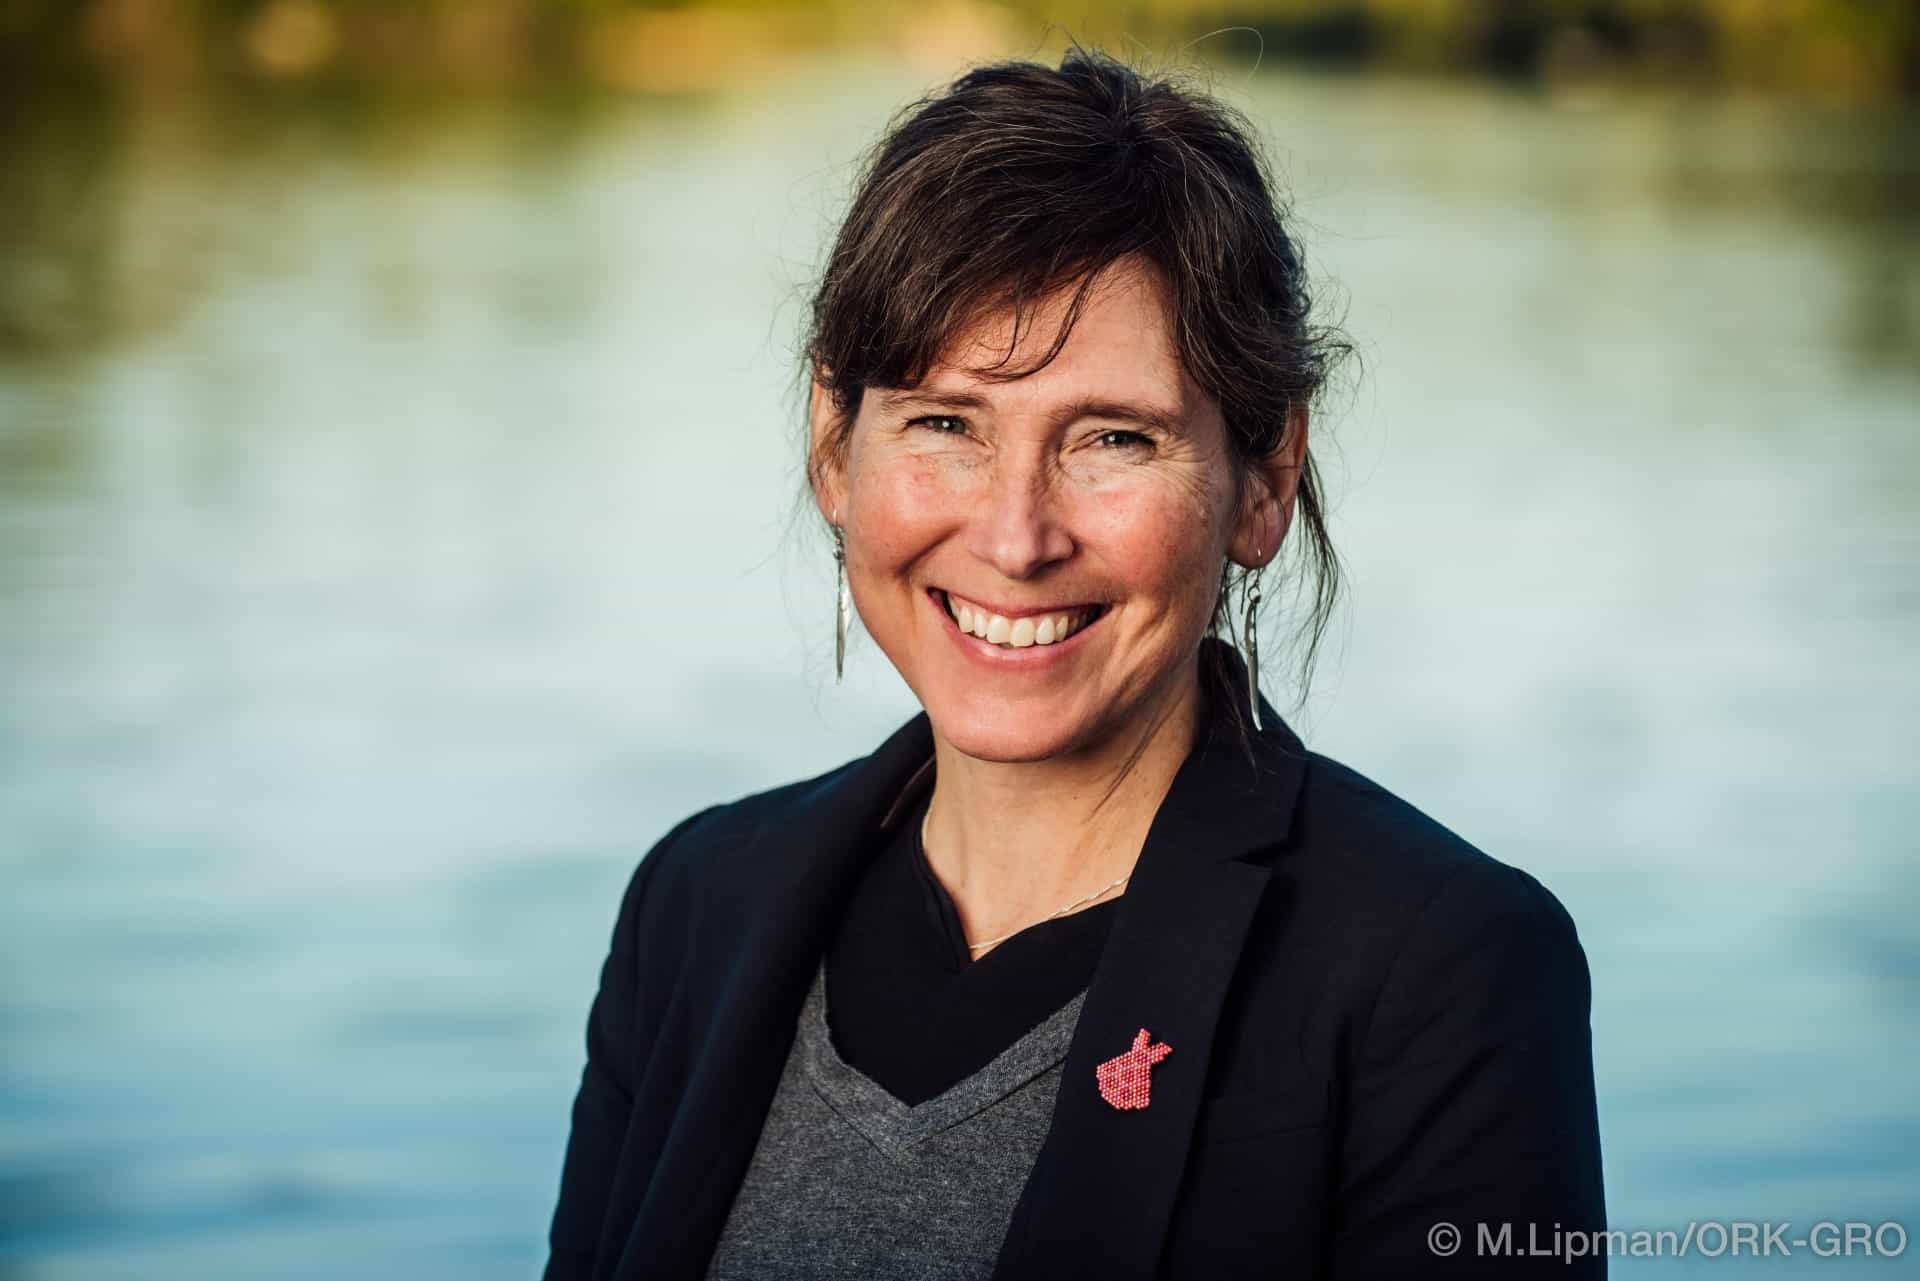 New Leadership at Ottawa Riverkeeper